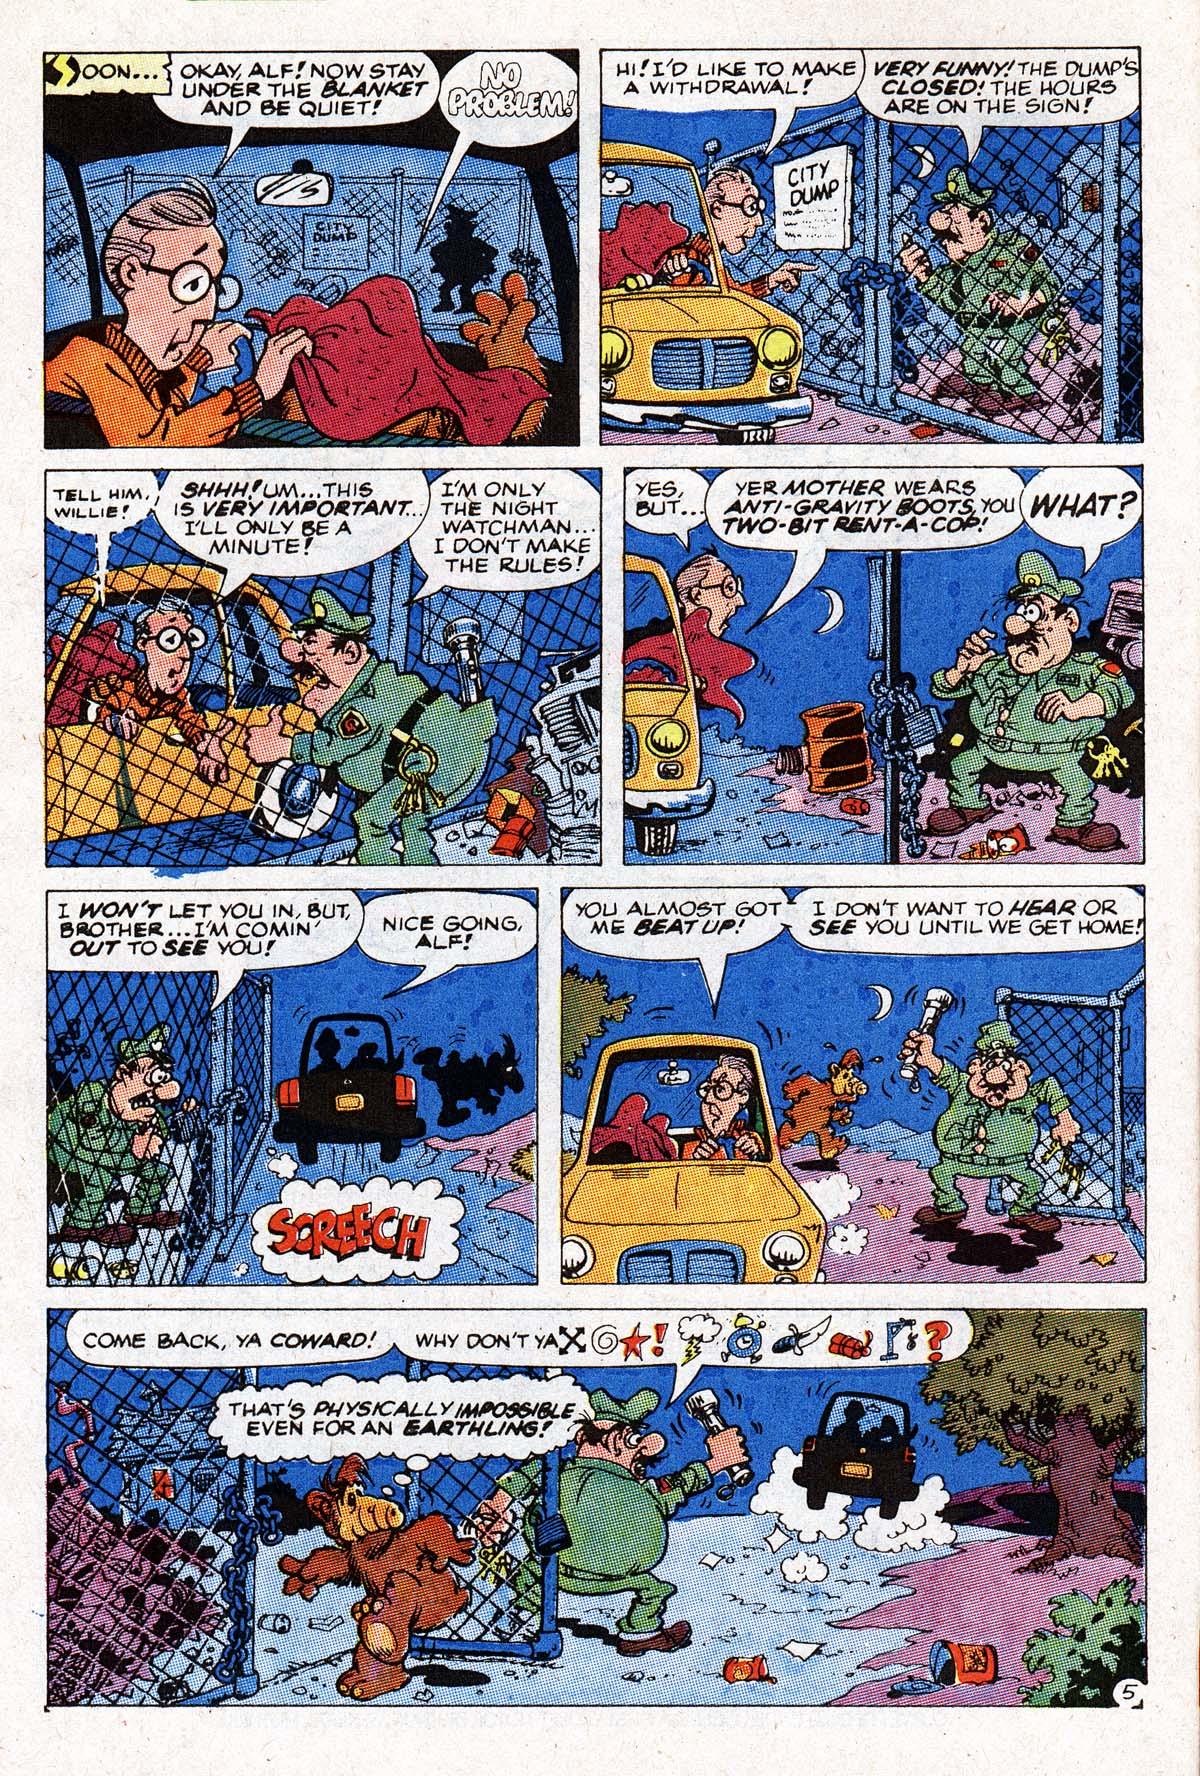 Read online ALF comic -  Issue #1 - 6